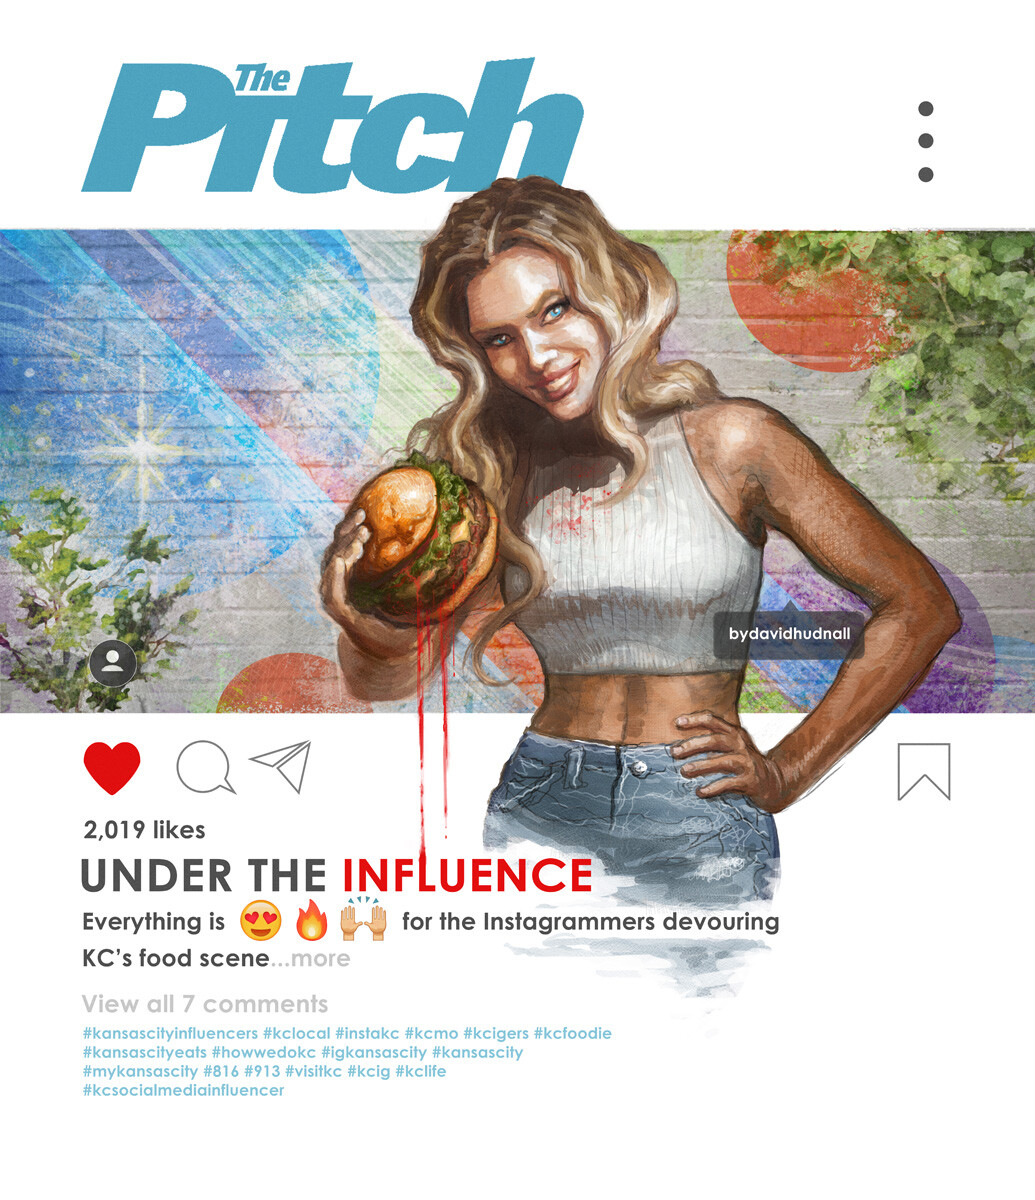 The Pitch cover illustration